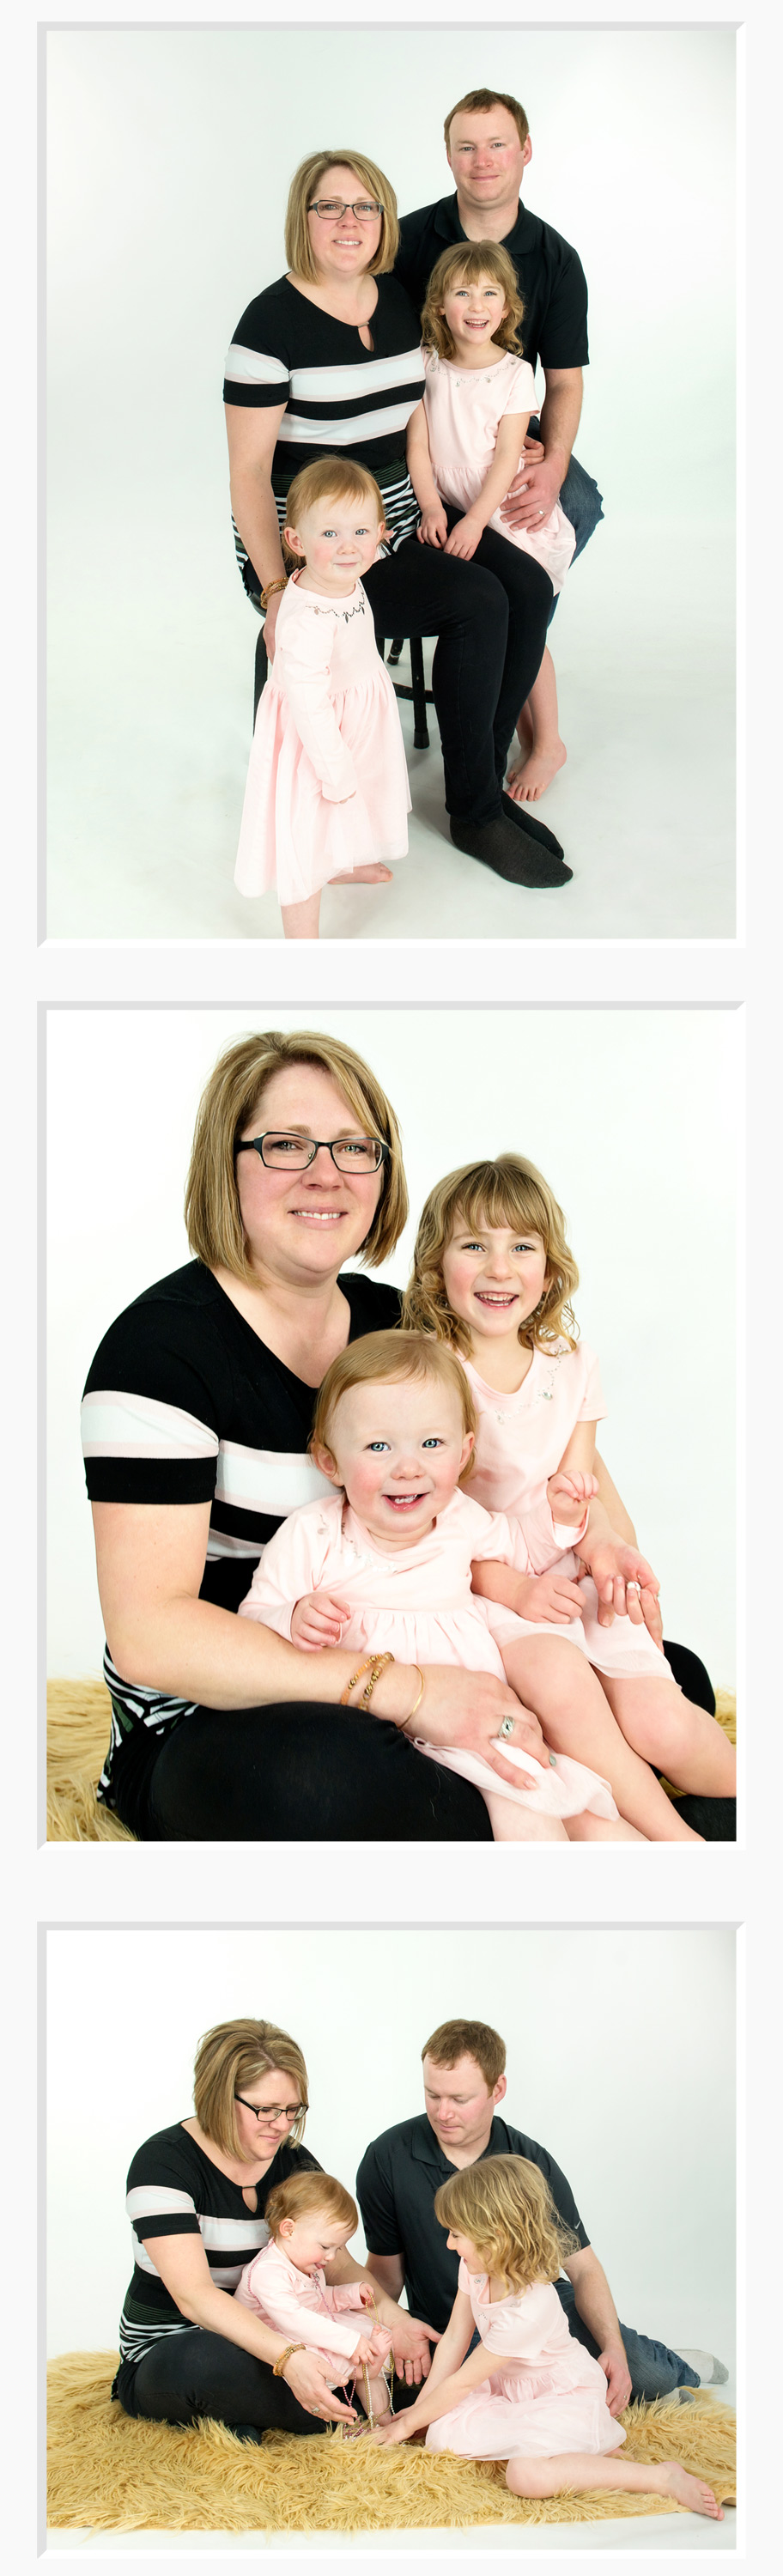 regina-family-photography-free-lense-photo.jpg